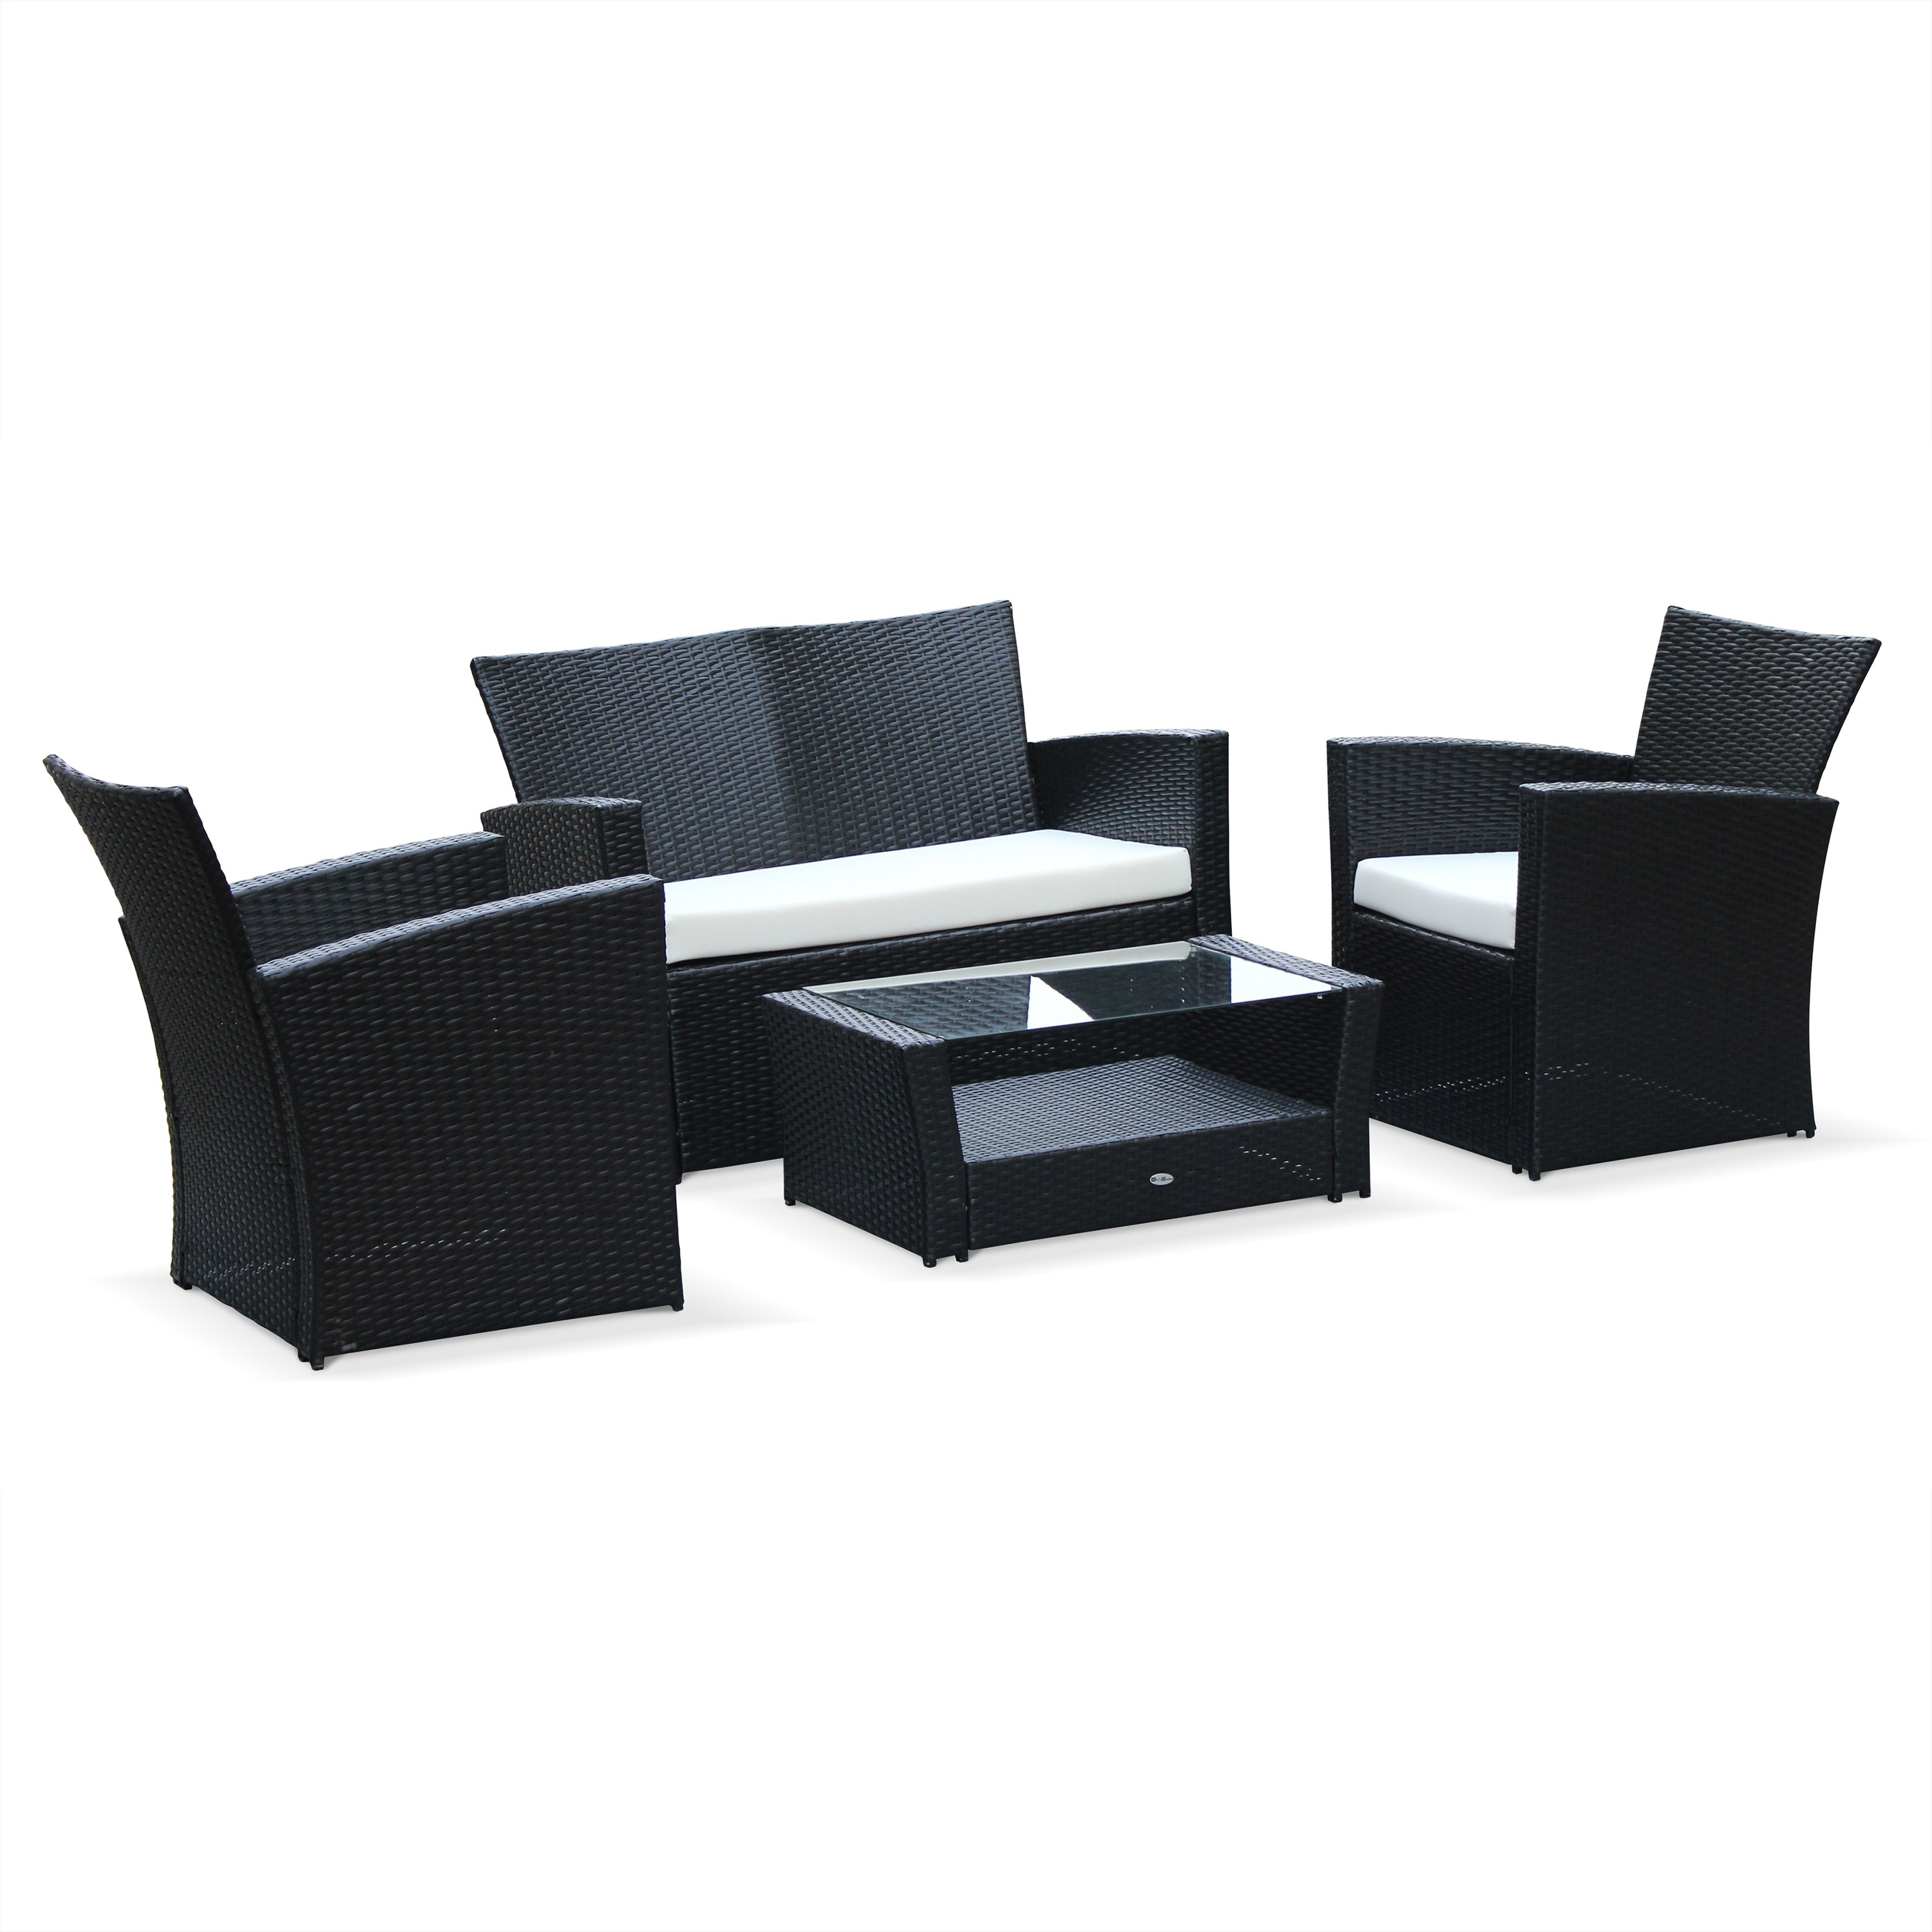 salon de jardin pour balcon petit prix id es de. Black Bedroom Furniture Sets. Home Design Ideas